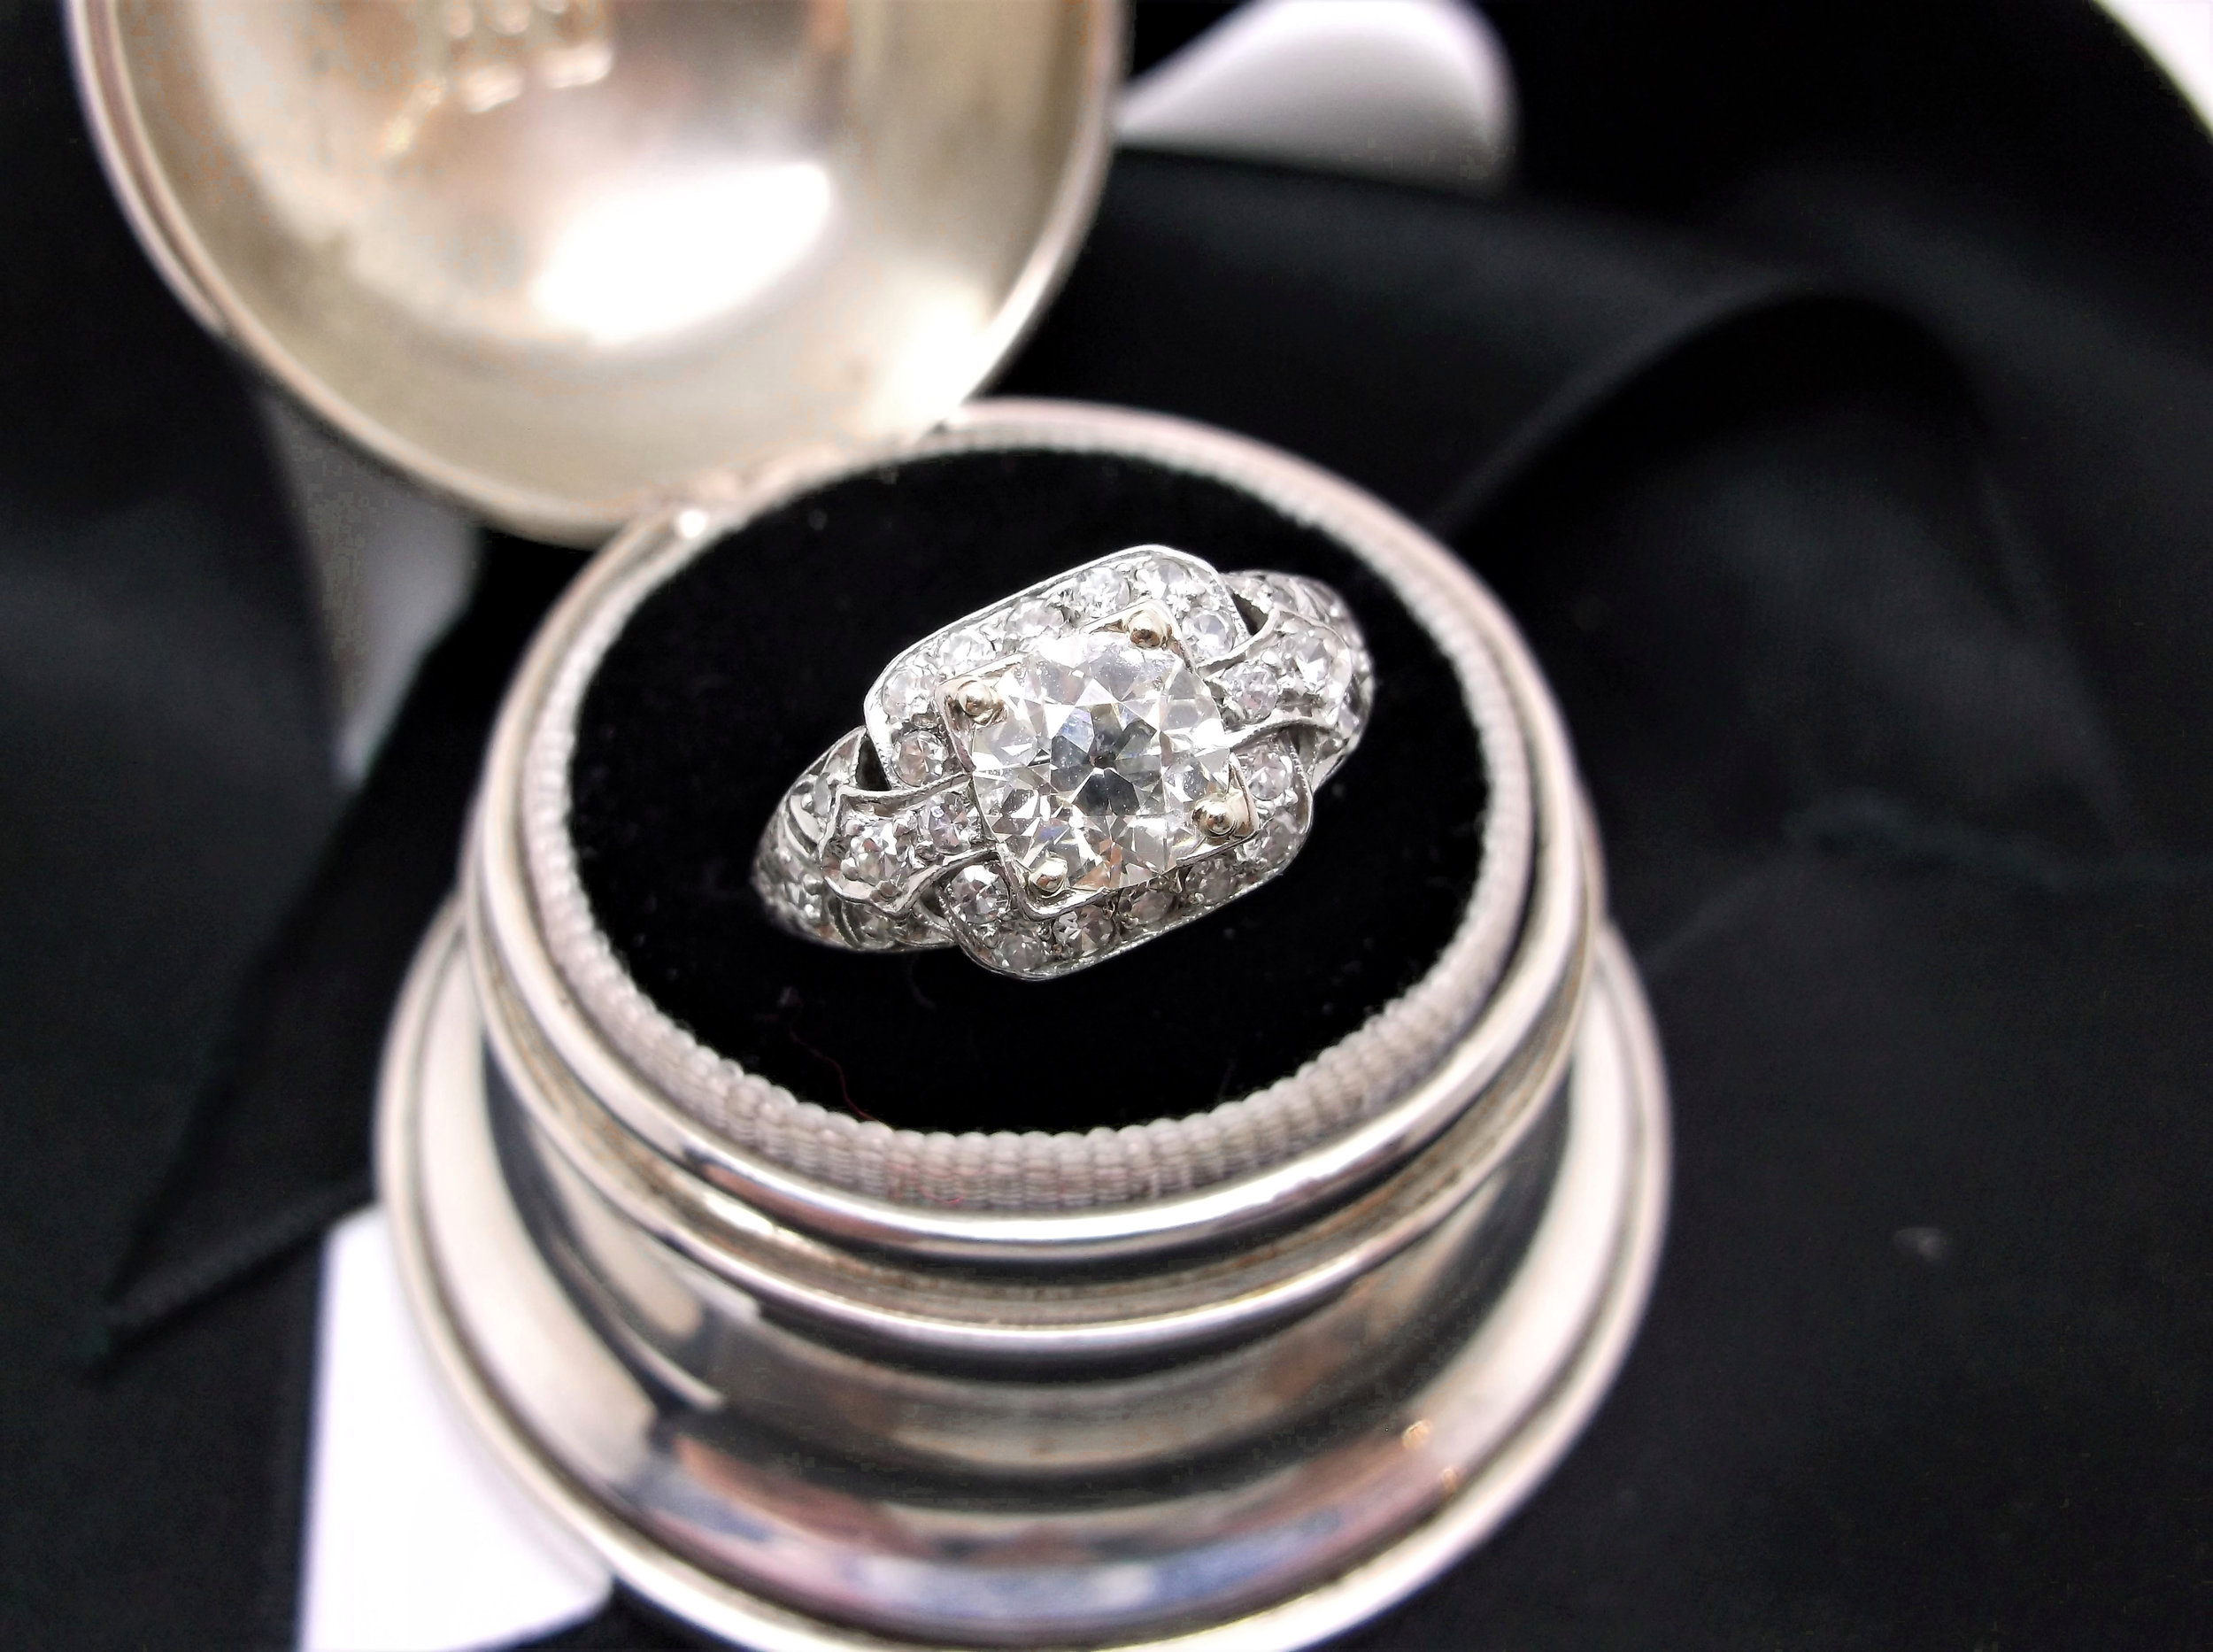 Gorgeous 1920's diamond and platinum ring, featuring a 1.05 carat Old European cut diamond in the center. Shop this ring  HERE